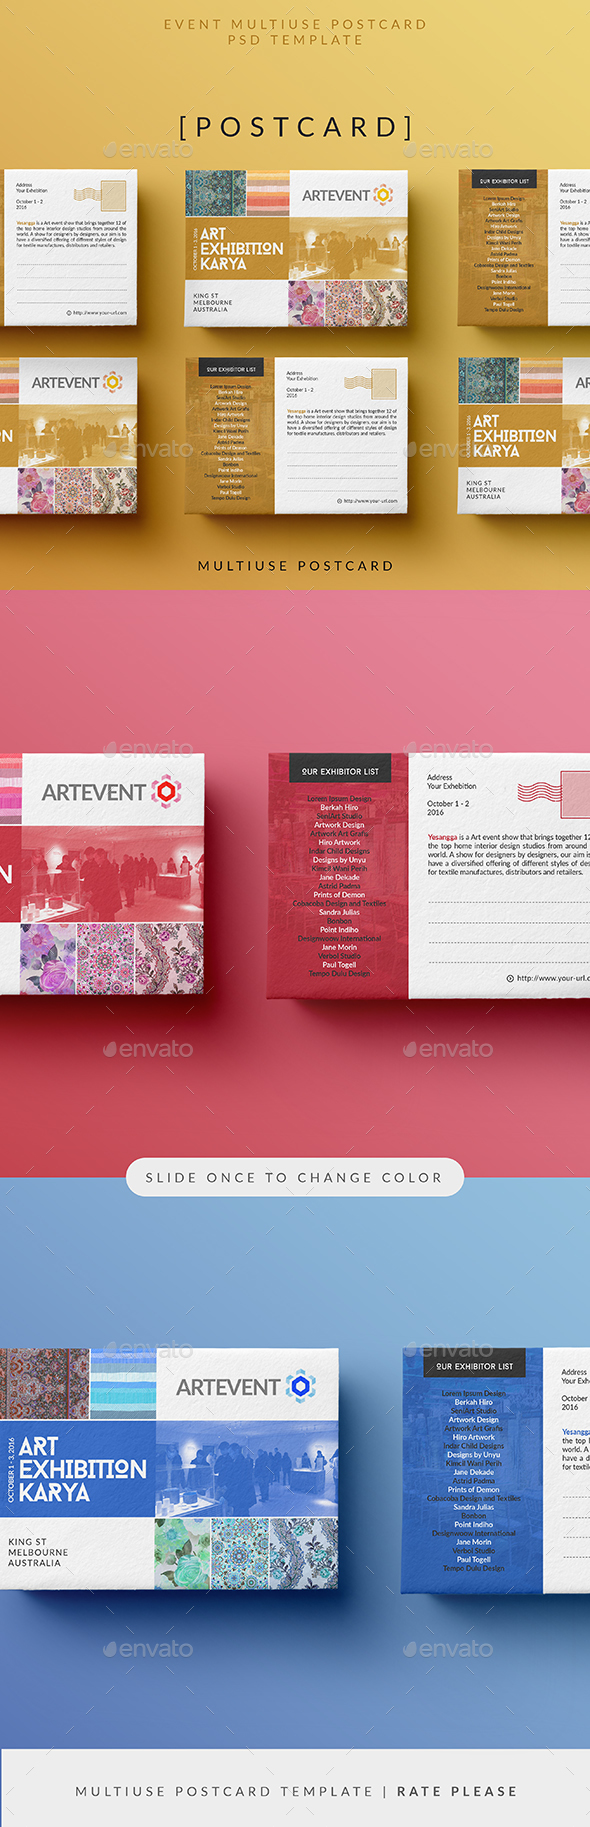 Simple Event Postcard - Cards & Invites Print Templates